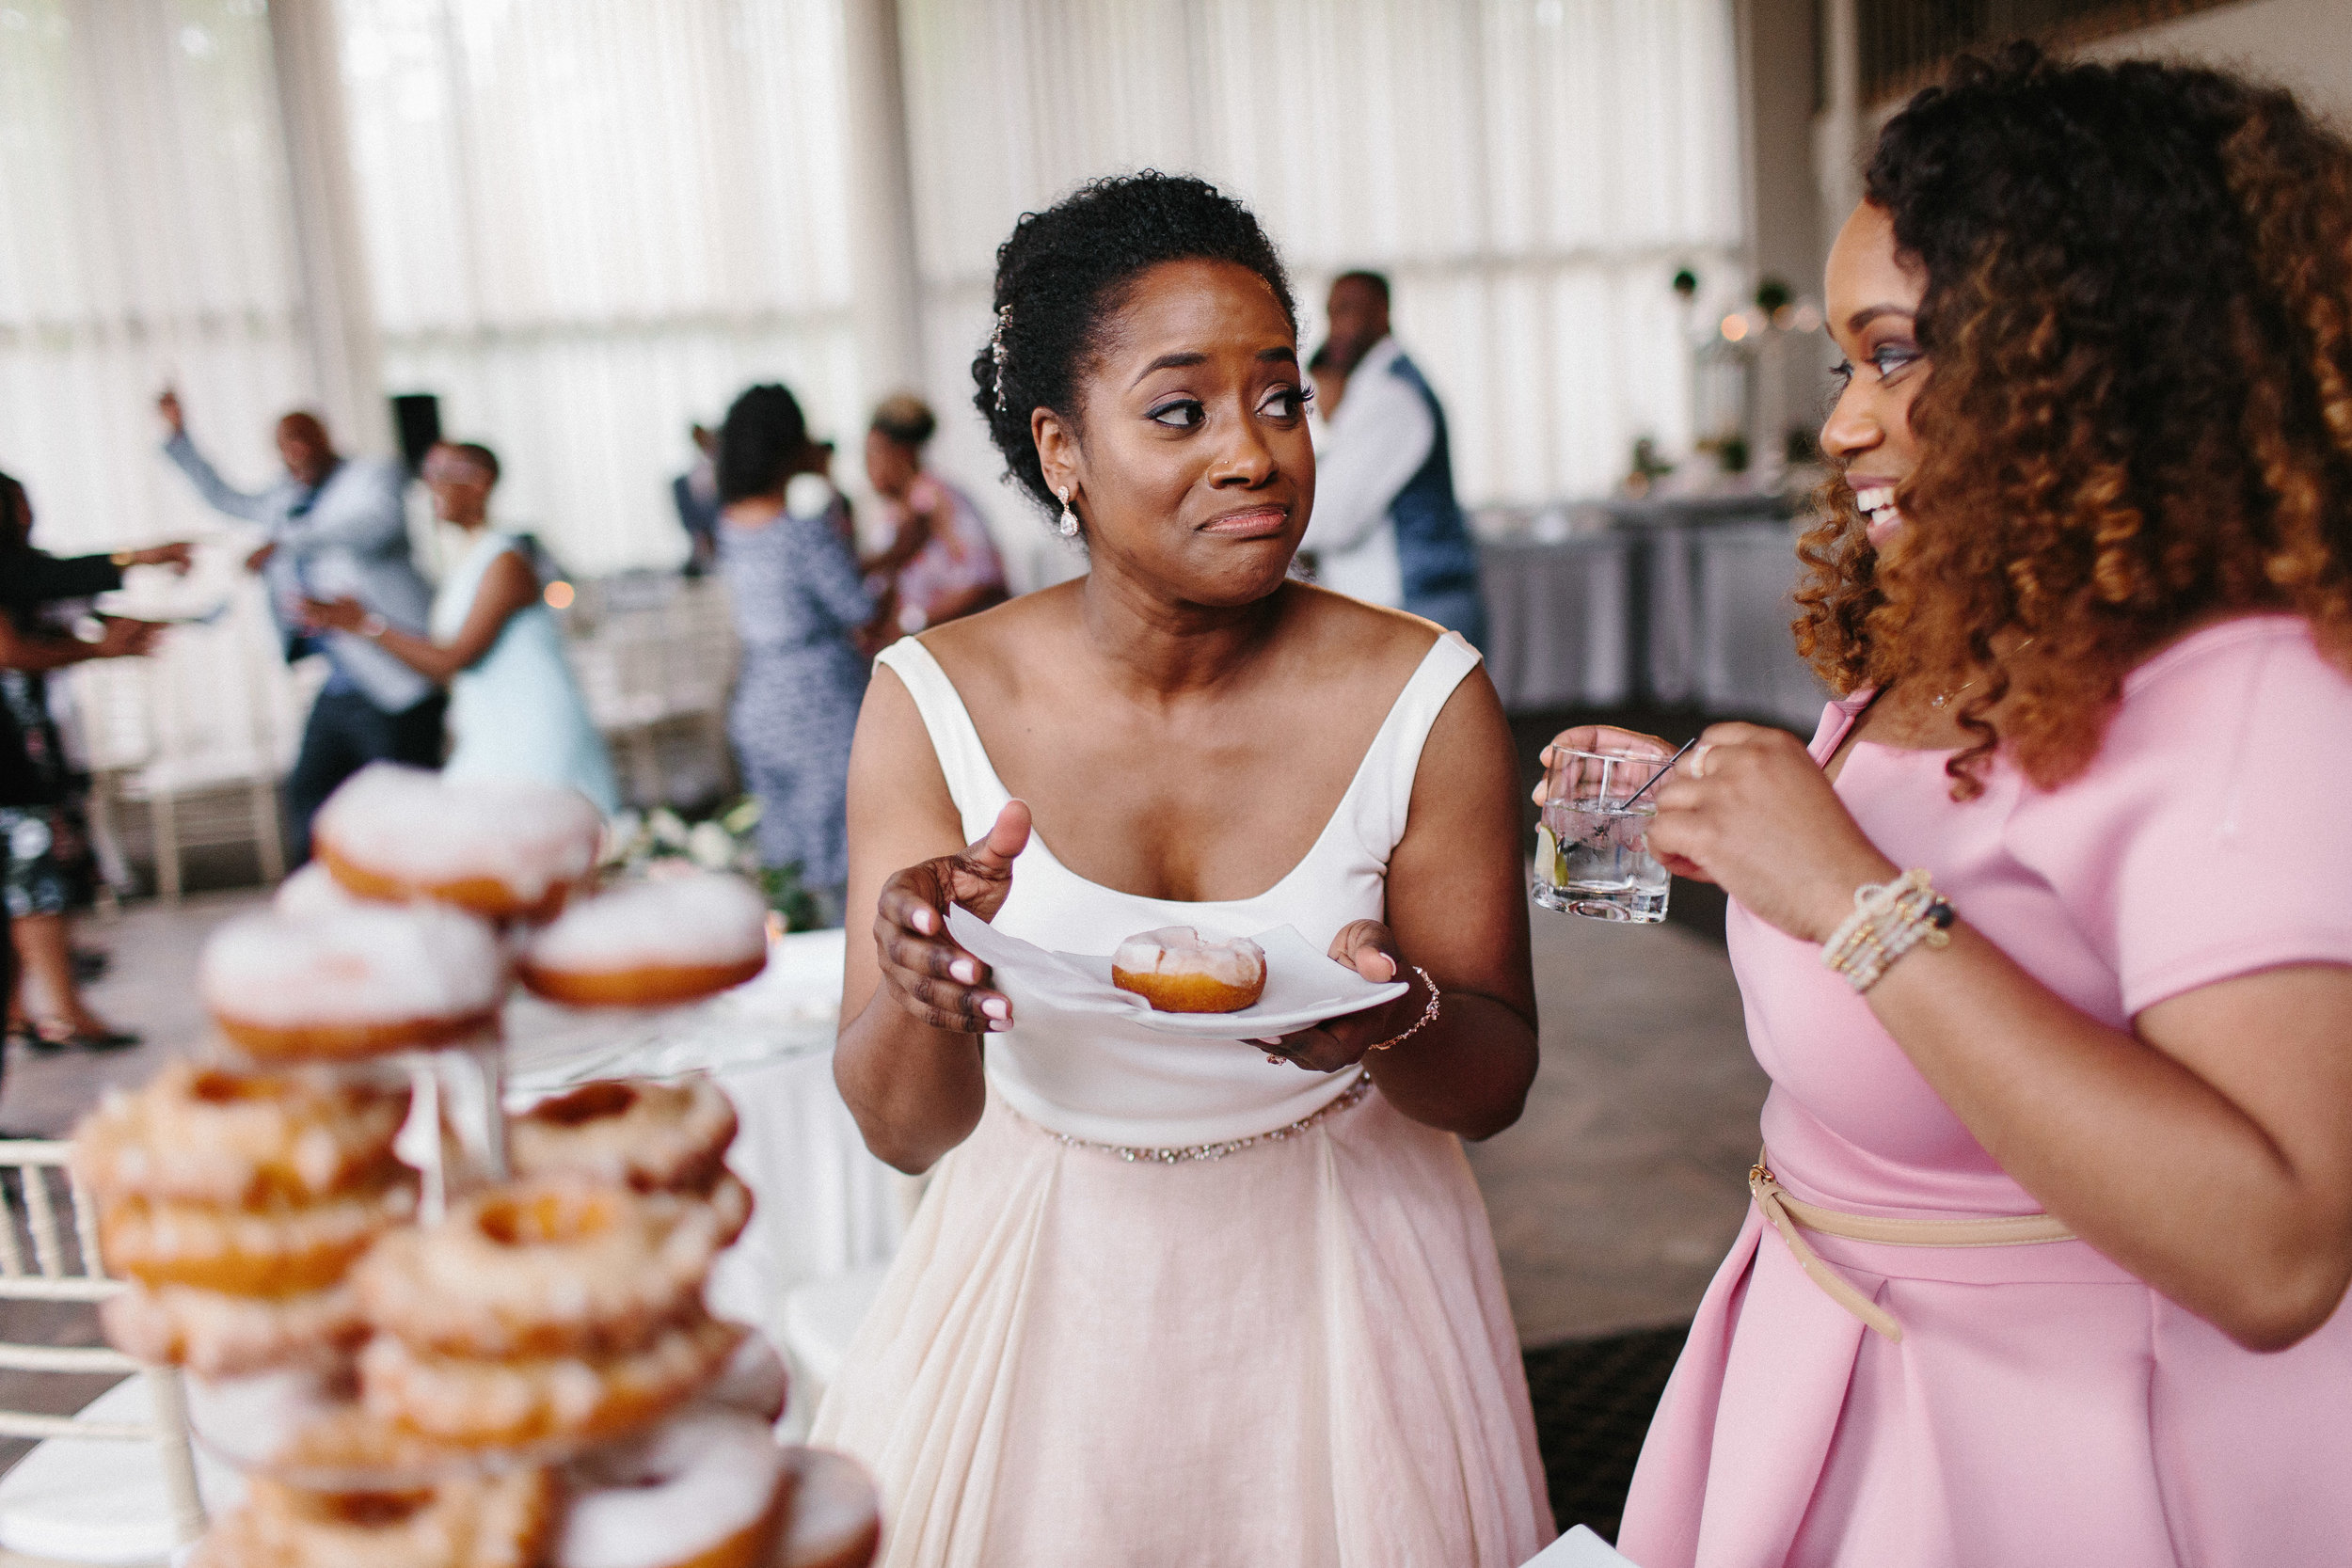 the_atrium_wedding_atlanta_norcross_lifestyle_photographers_lgbtq_1544.jpg